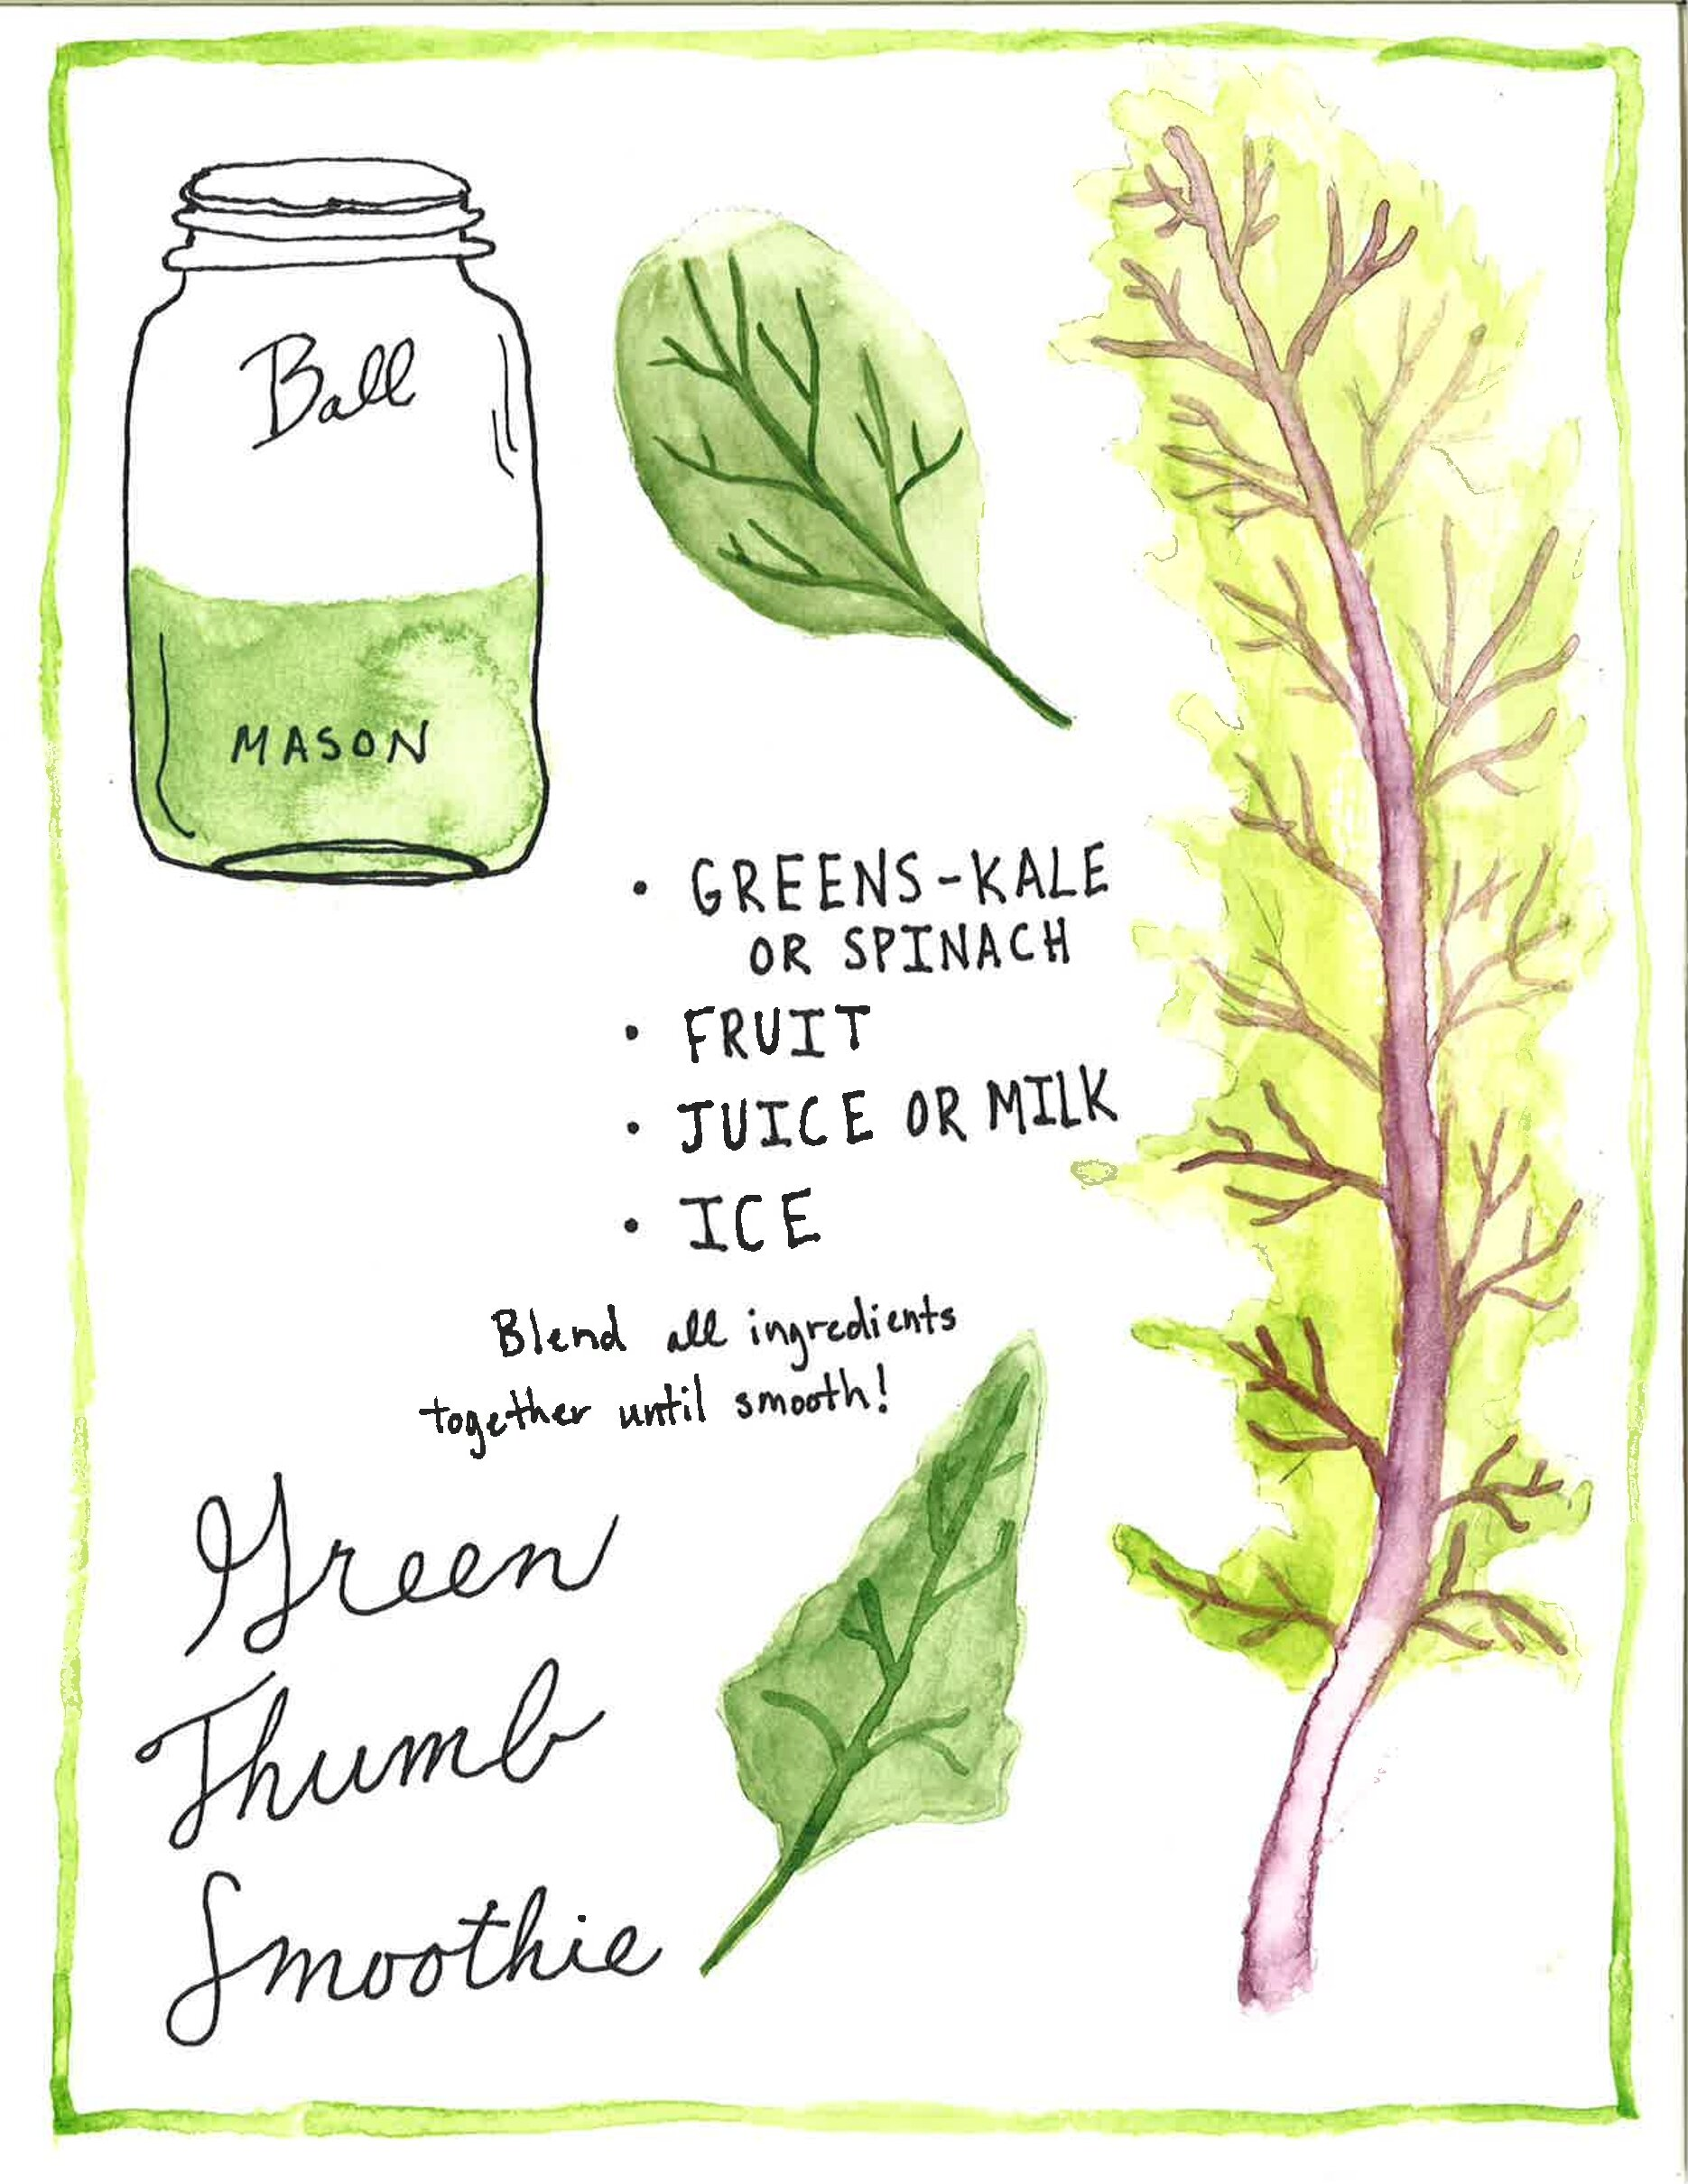 Green Thumb Smoothie - This green thumb smoothie is a great way to introduce new people to this awesome green! It's packed with essential nutrients and is still a fruity, sweet treat for any time of day.